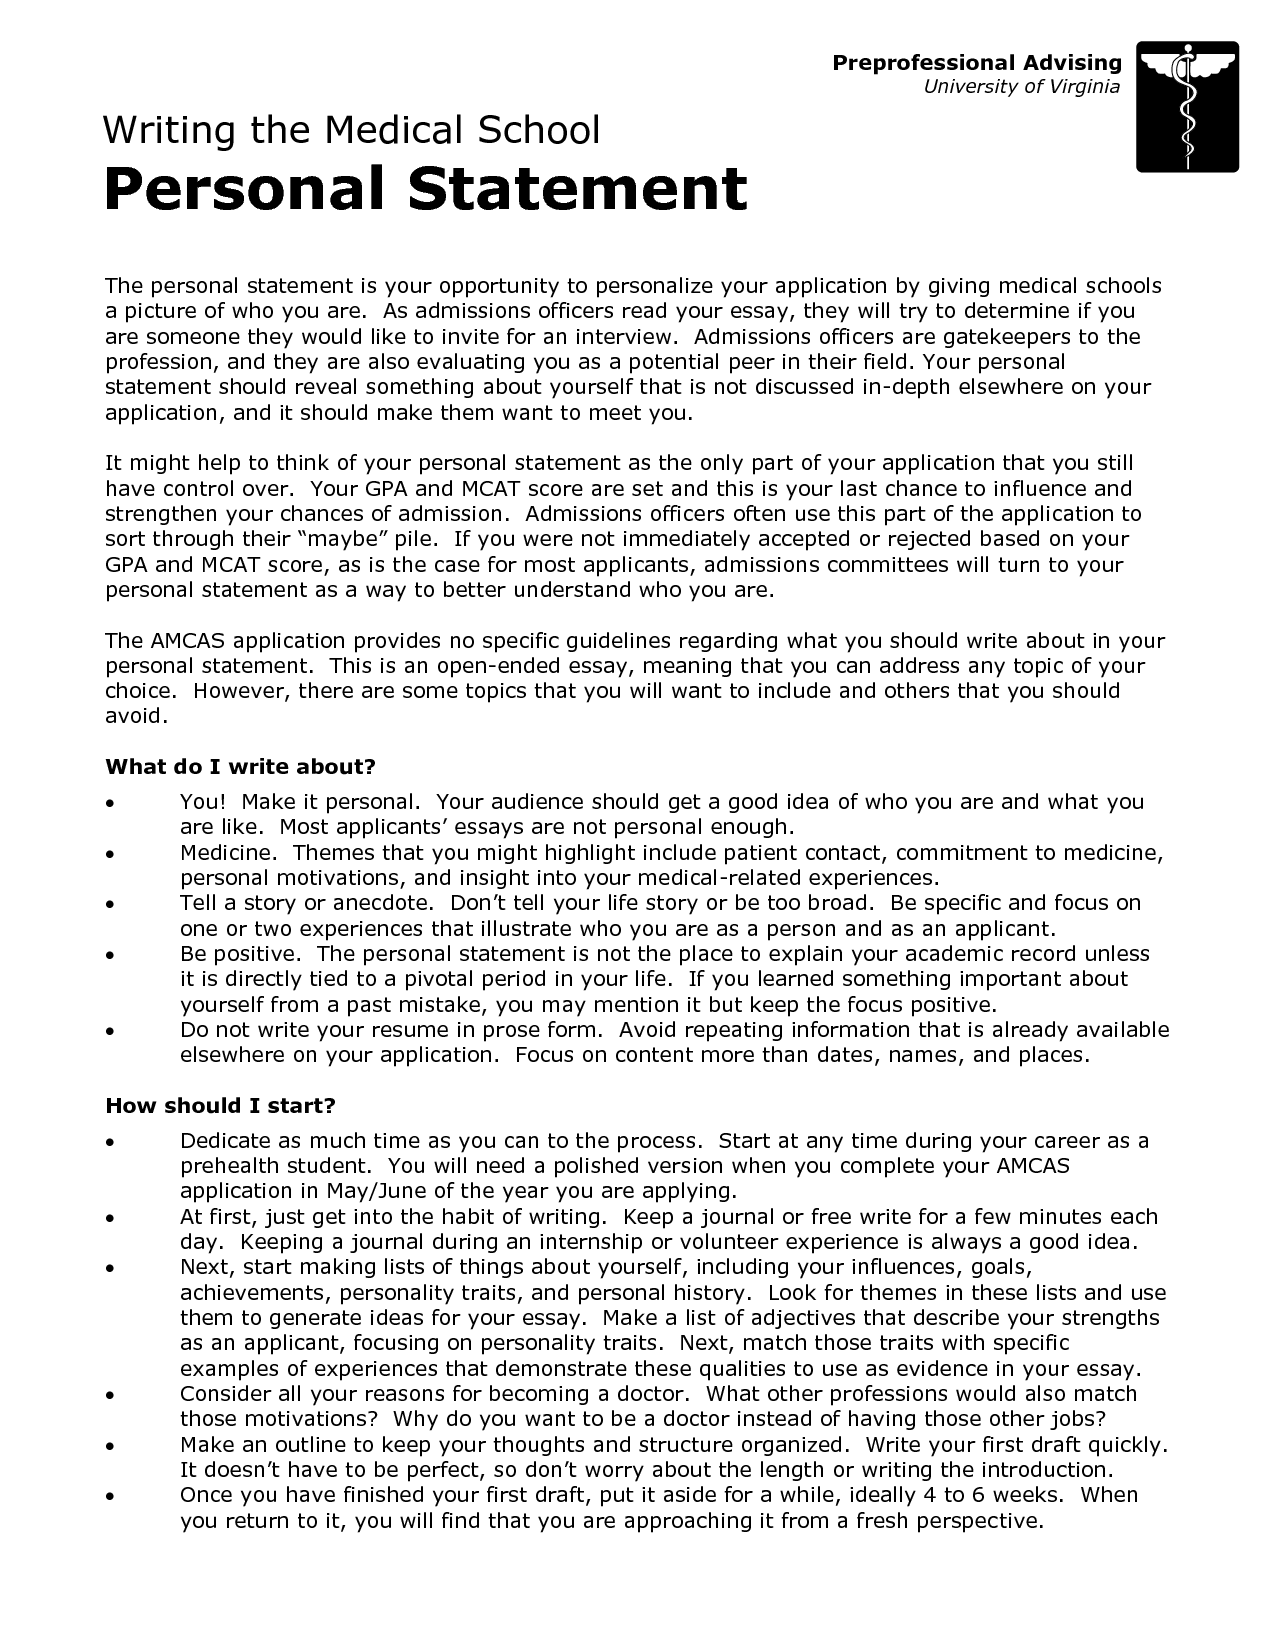 Help with write a personal statement school